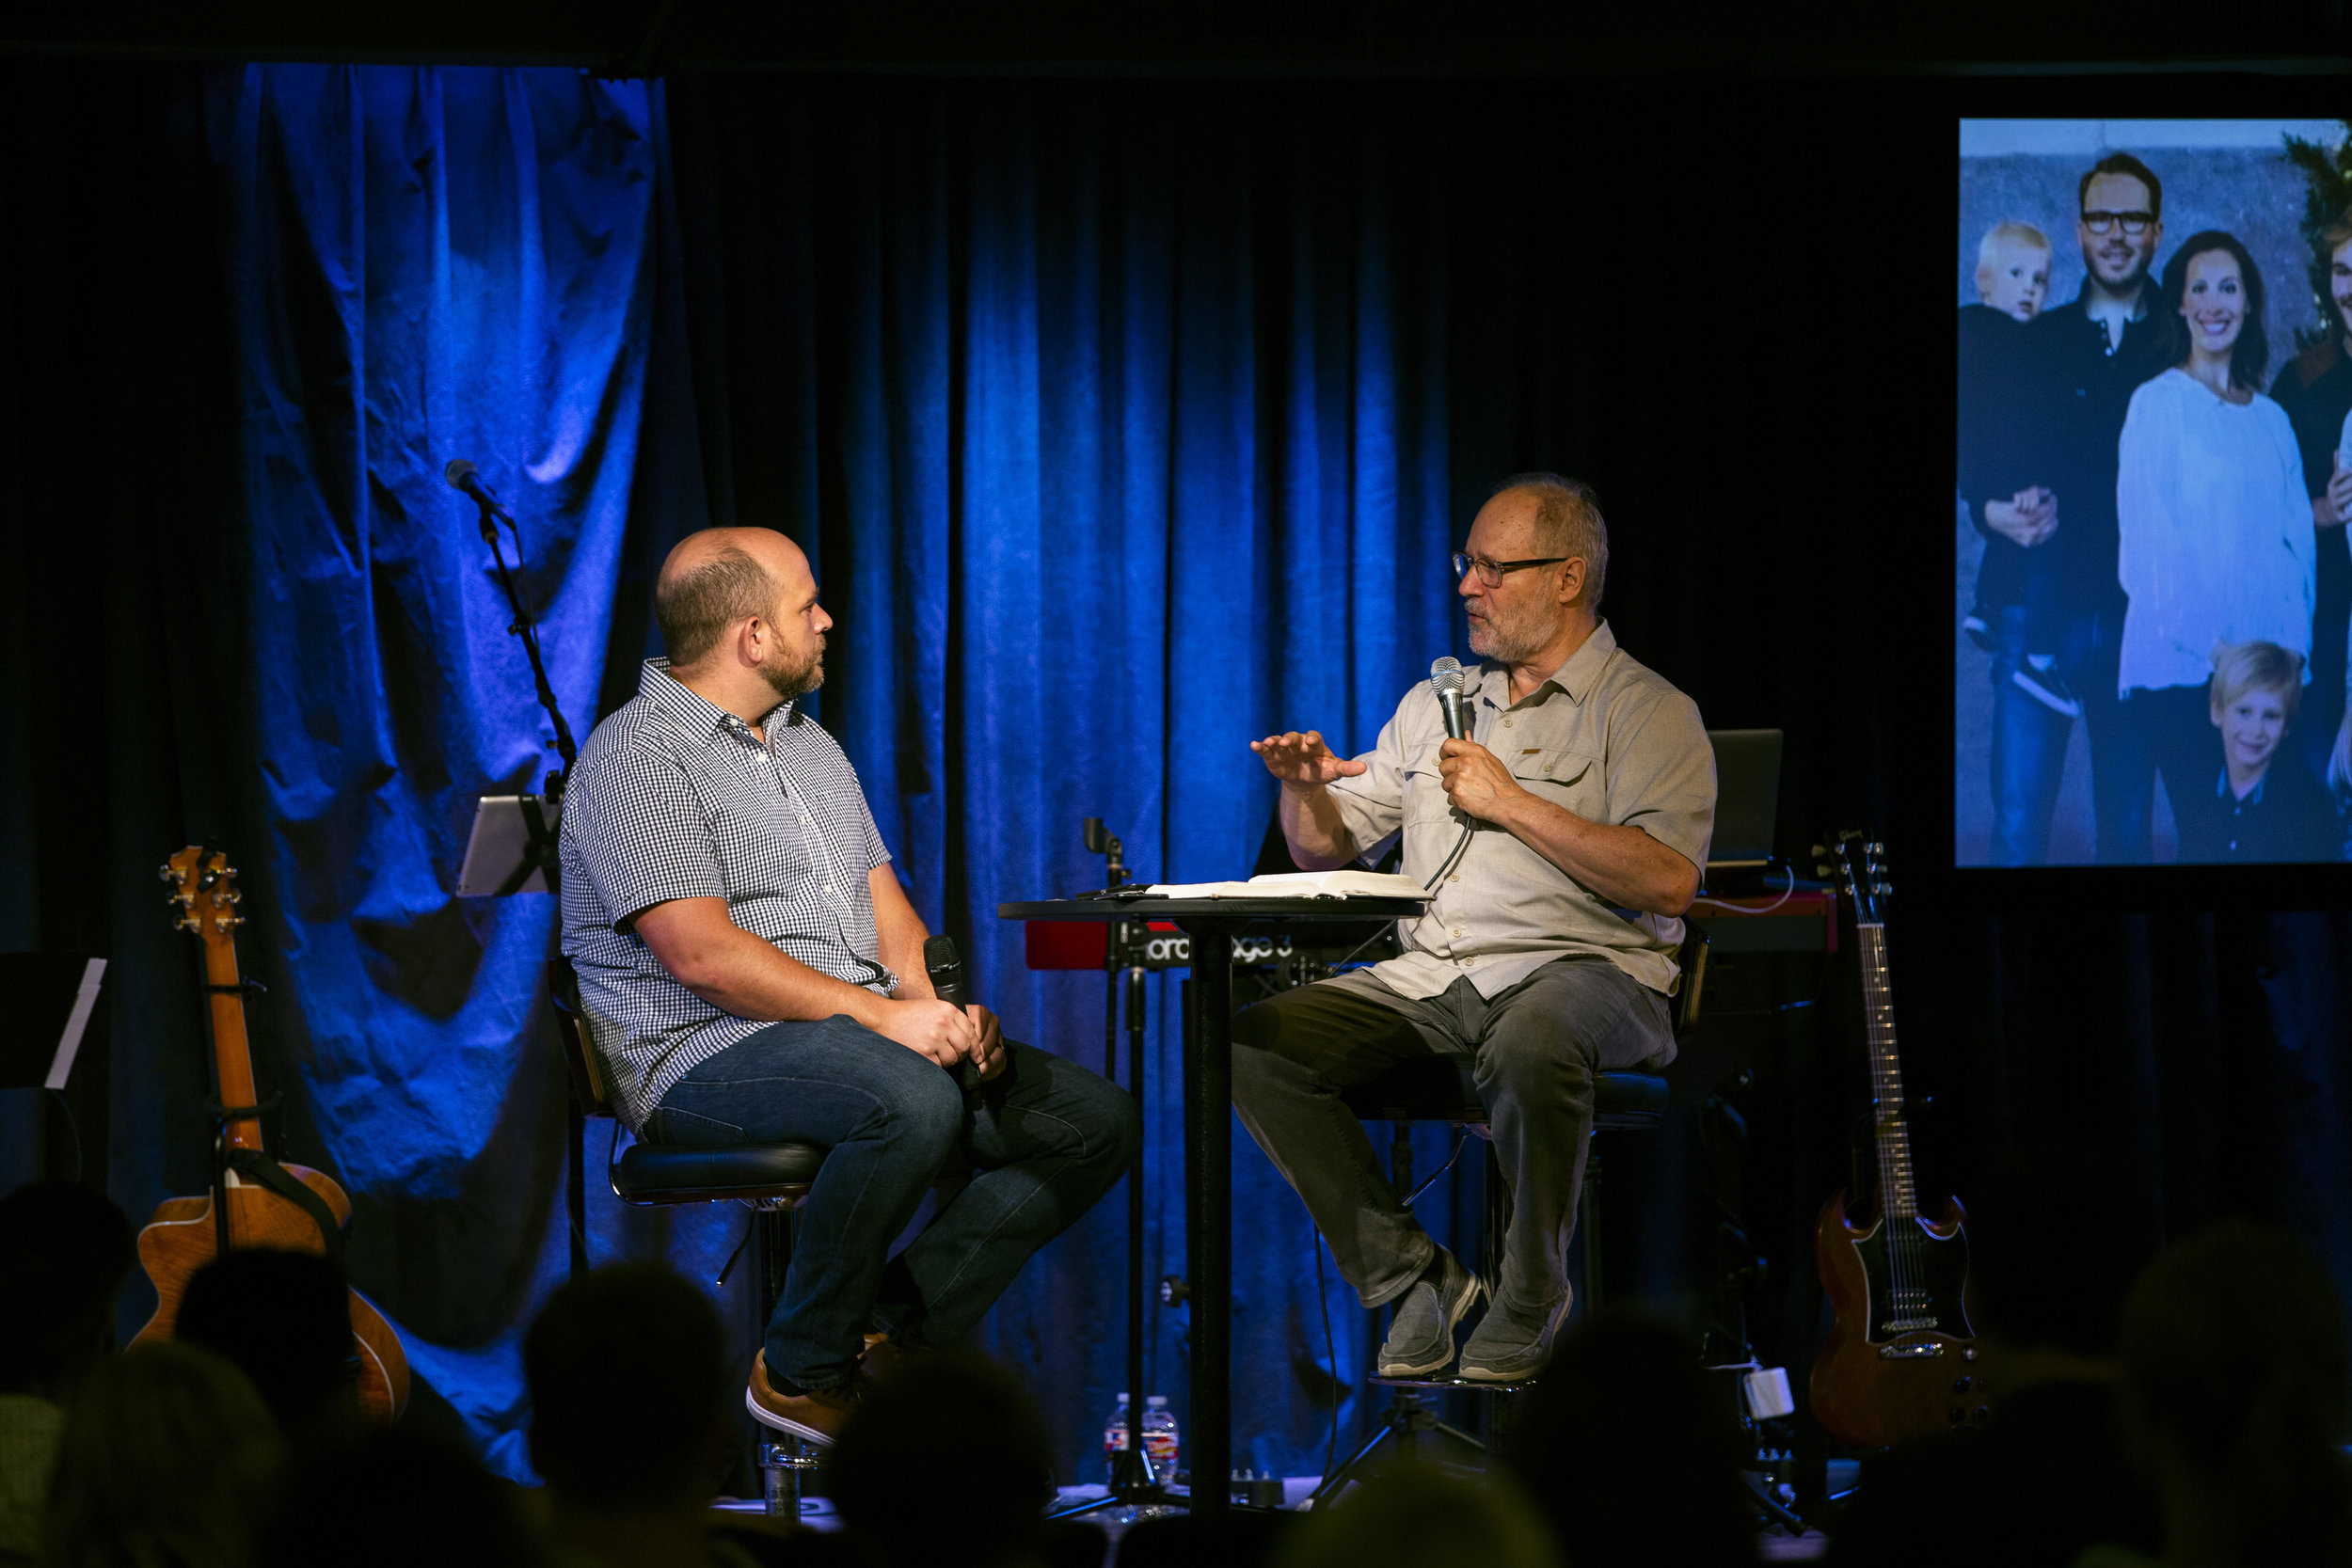 Michael Sullivant - We interviewed Michael Sullivant about growing in the prophetic.